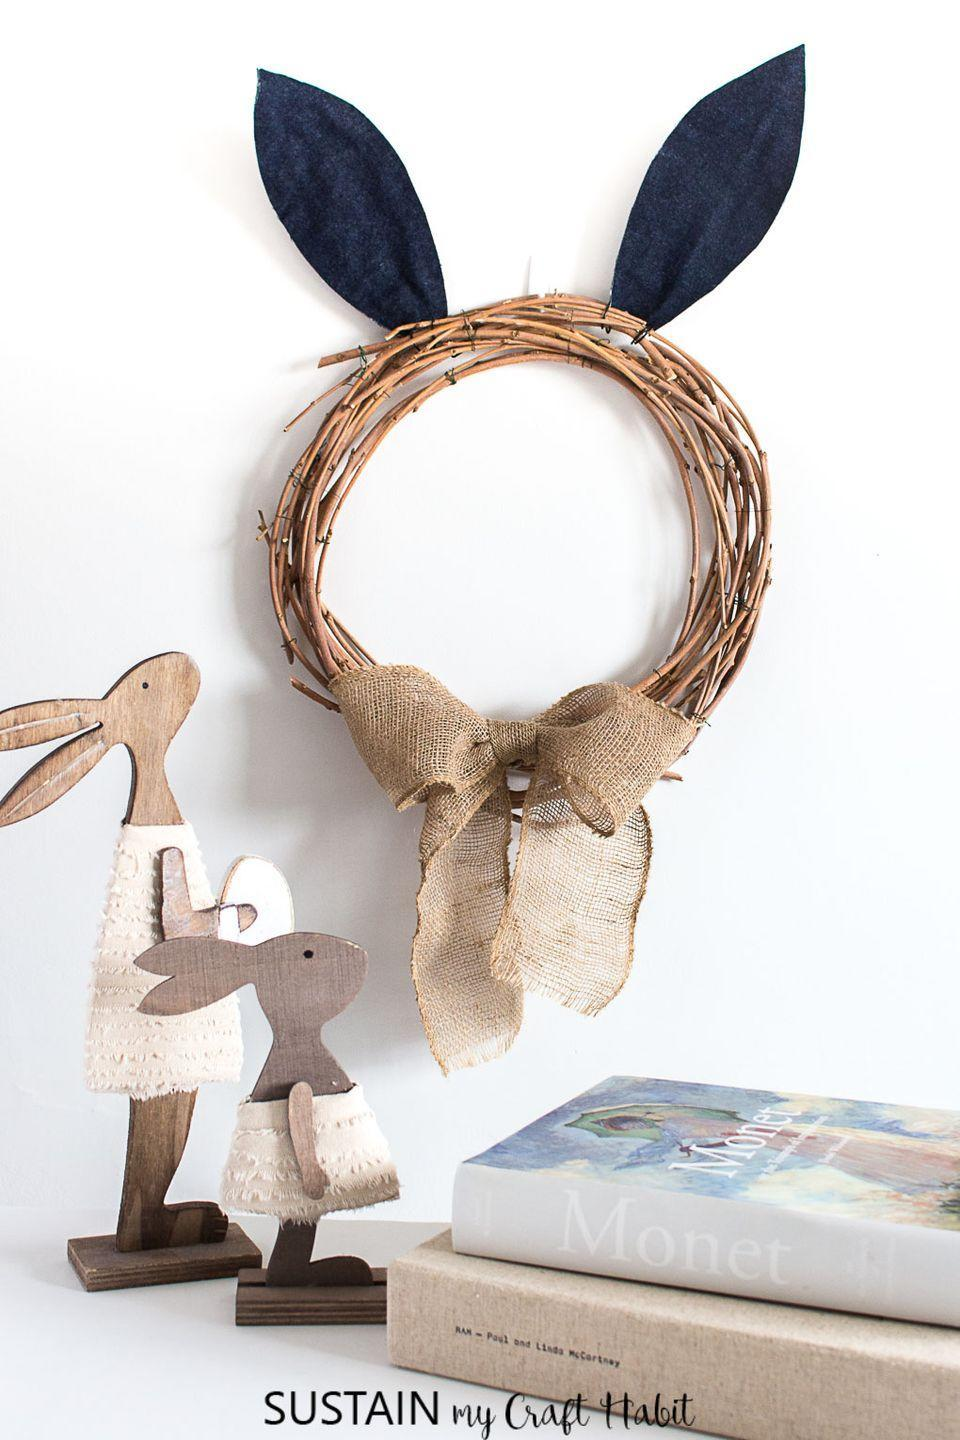 """<p>Hop to it! All this easy-peasy craft requires is a grapevine wreath form, some fabric bunny ears, and a burlap ribbon. </p><p><strong>Get the tutorial at <a href=""""https://sustainmycrafthabit.com/diy-easter-wreath/"""" rel=""""nofollow noopener"""" target=""""_blank"""" data-ylk=""""slk:Sustain My Craft Habit"""" class=""""link rapid-noclick-resp"""">Sustain My Craft Habit</a>.</strong></p><p><a class=""""link rapid-noclick-resp"""" href=""""https://go.redirectingat.com?id=74968X1596630&url=https%3A%2F%2Fwww.walmart.com%2Fip%2FSinger-8-5-Bent-Fabric-Scissors-1-Each%2F21982993&sref=https%3A%2F%2Fwww.thepioneerwoman.com%2Fhome-lifestyle%2Fcrafts-diy%2Fg35698457%2Fdiy-easter-wreath-ideas%2F"""" rel=""""nofollow noopener"""" target=""""_blank"""" data-ylk=""""slk:SHOP FABRIC SCISSORS"""">SHOP FABRIC SCISSORS</a></p>"""